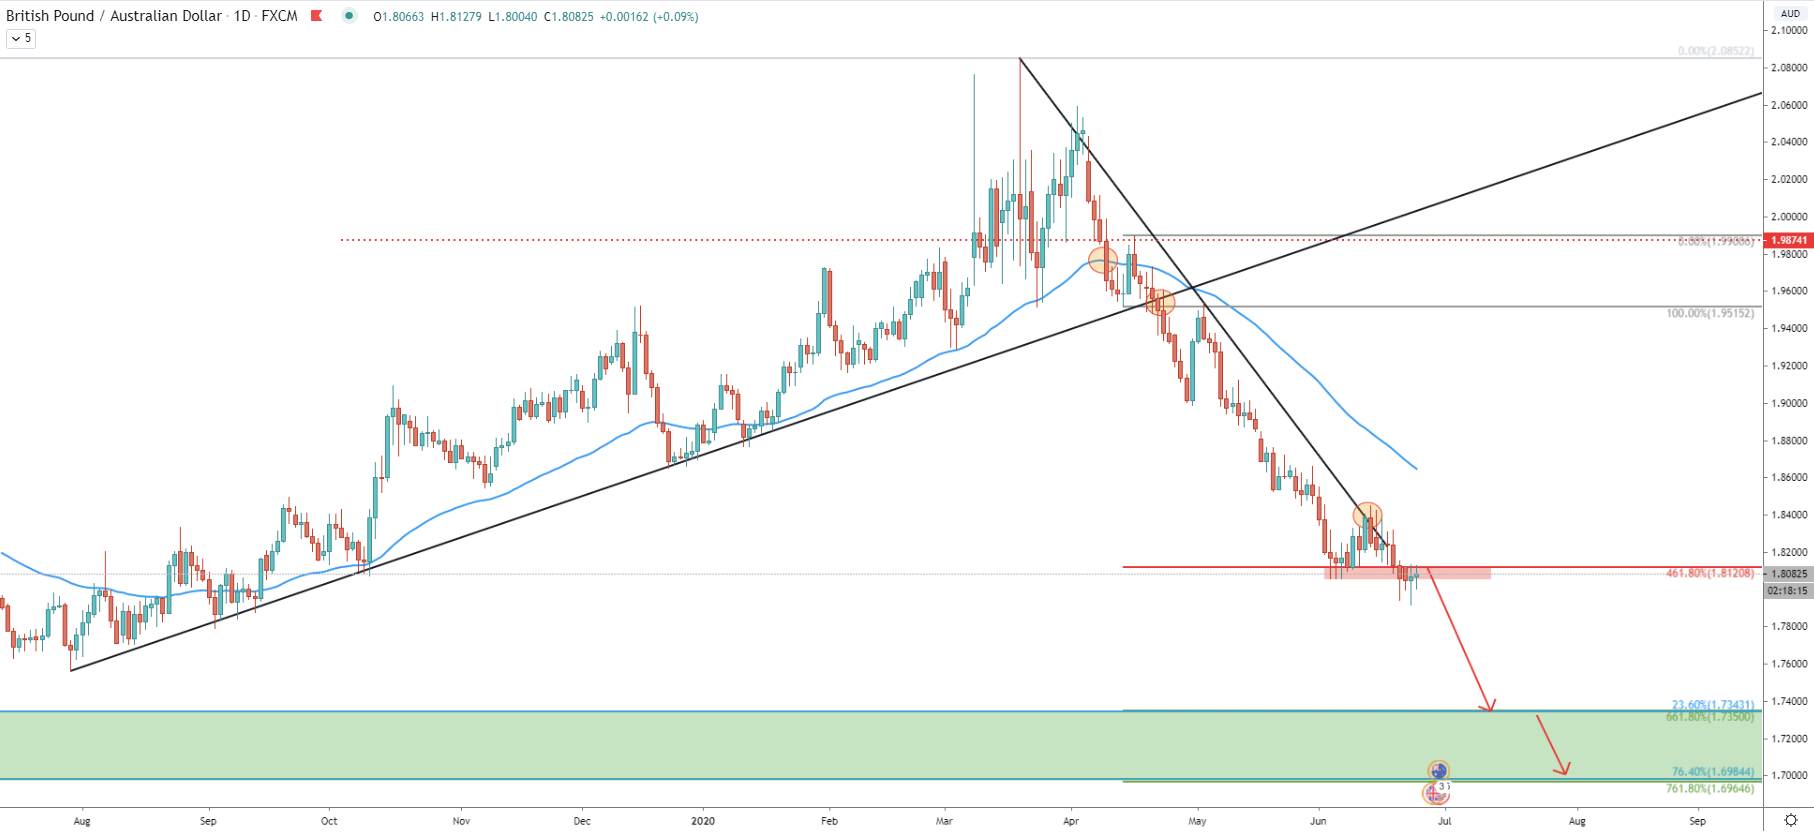 GBP/AUD Daily Technical Analysis 24 June 2020